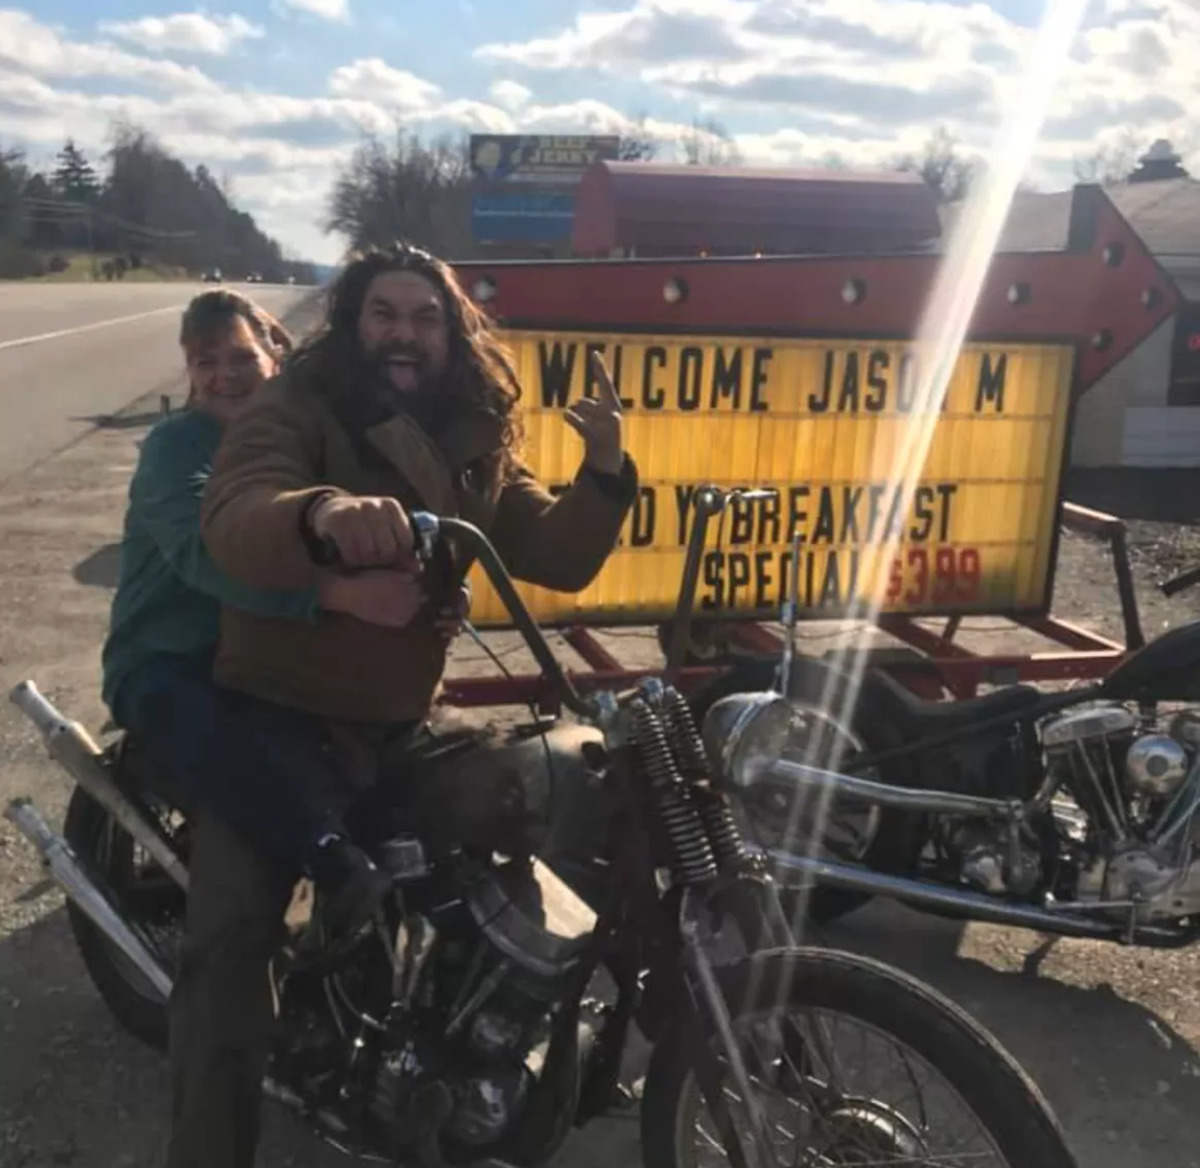 Jason with owner on back of his motorcycle